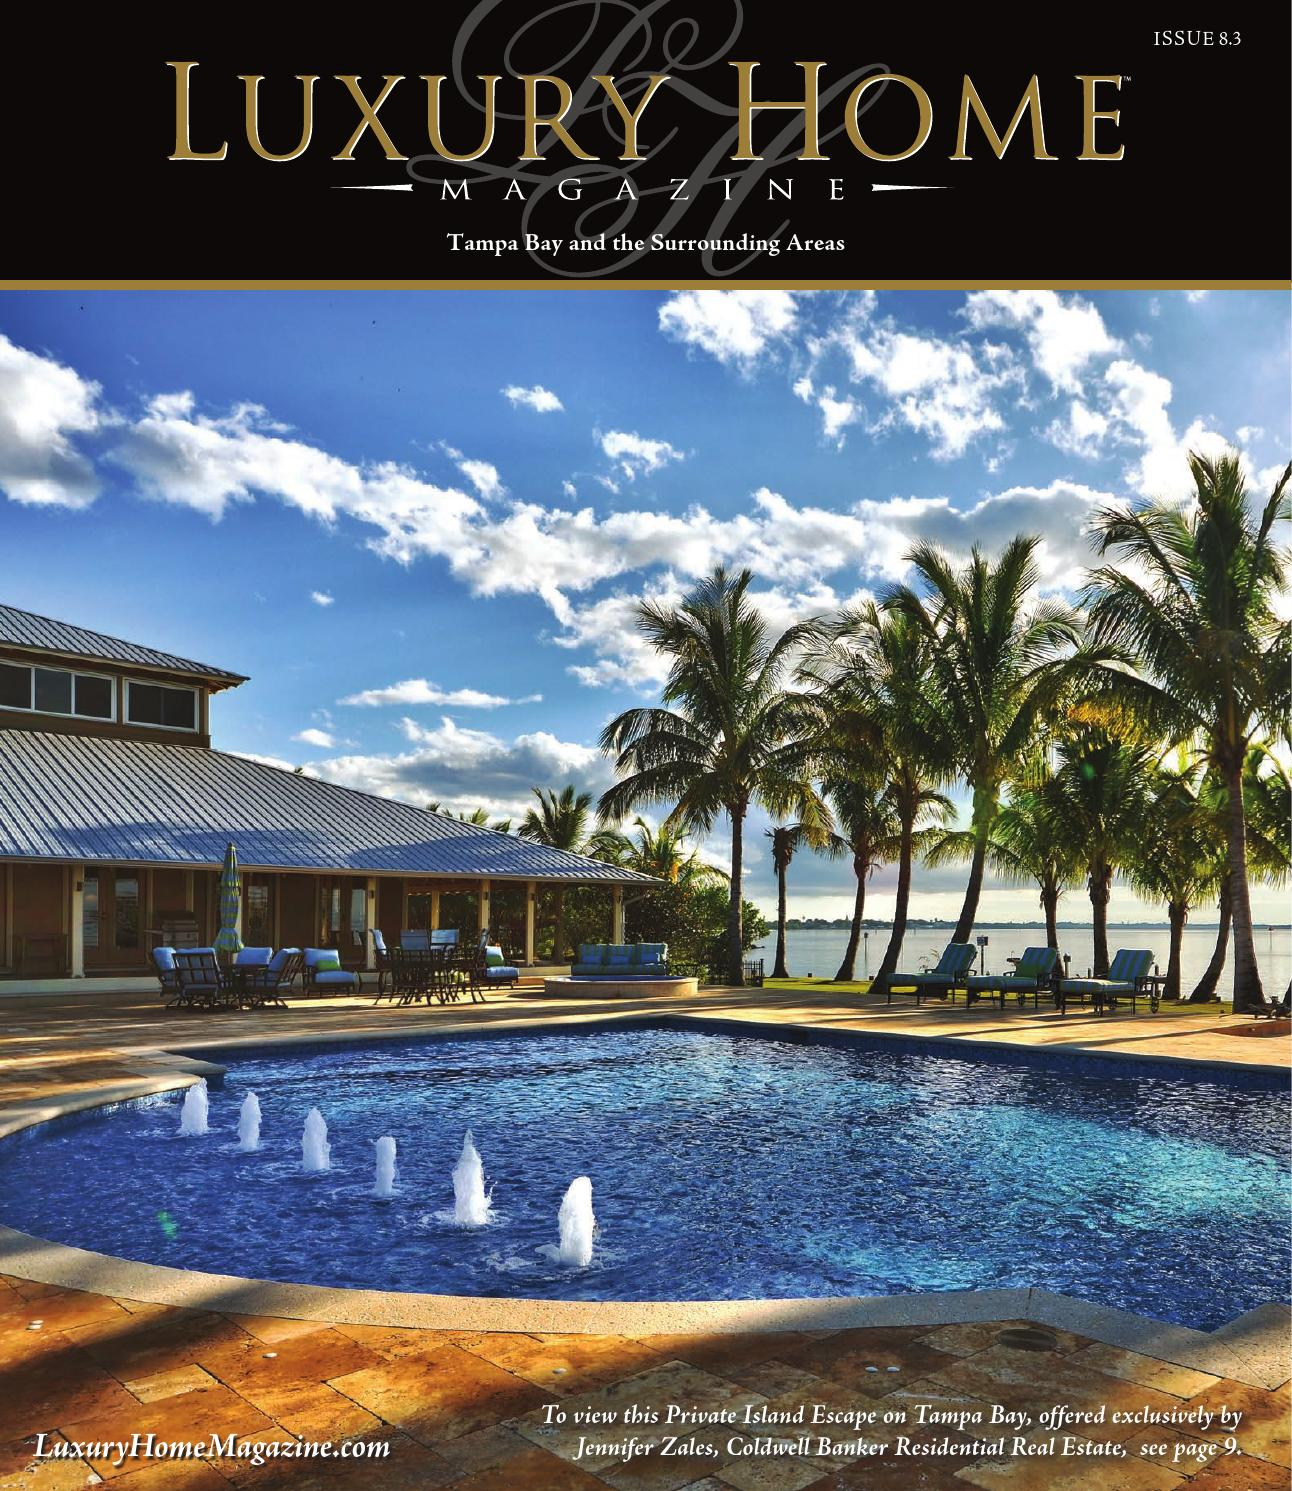 Luxury home magazine tampa bay issue 10.2 by luxury home magazine ...